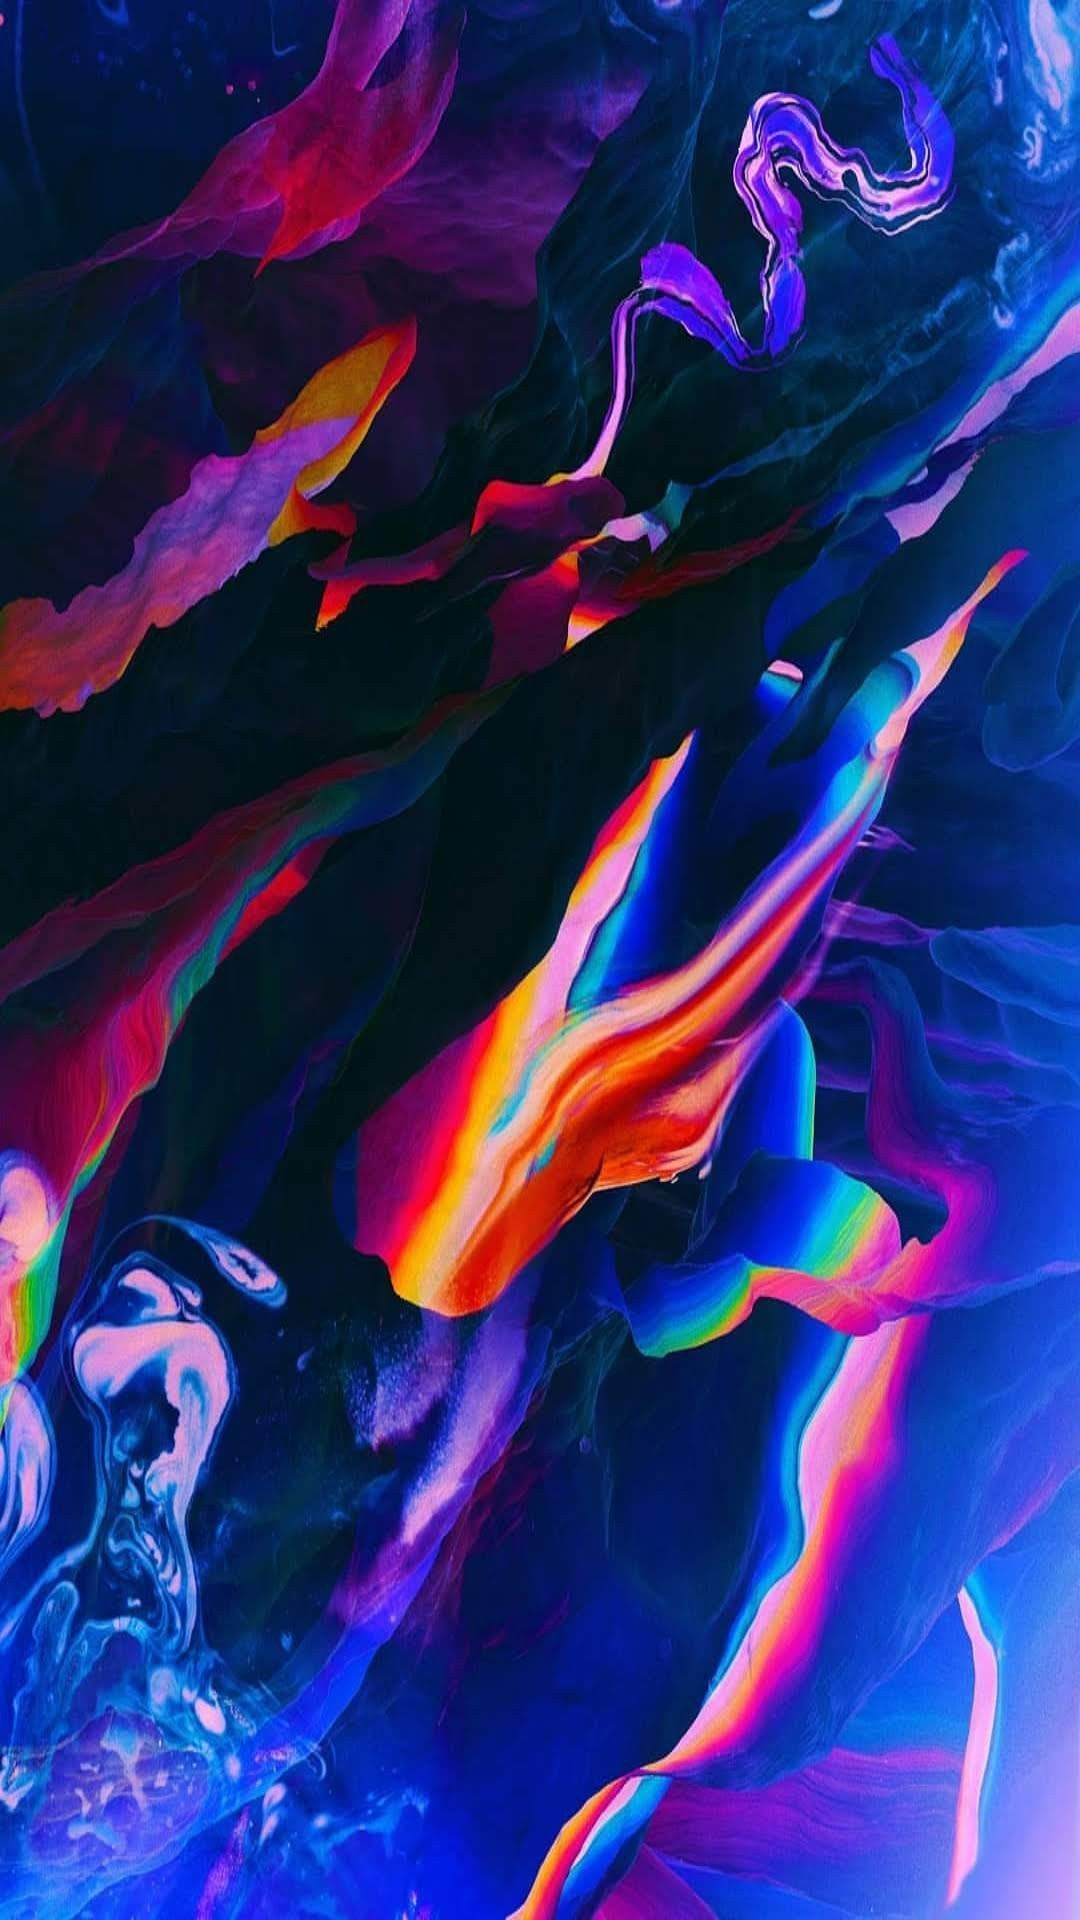 Abstract Art Abstract Amoled Liquid Gradient Abstract